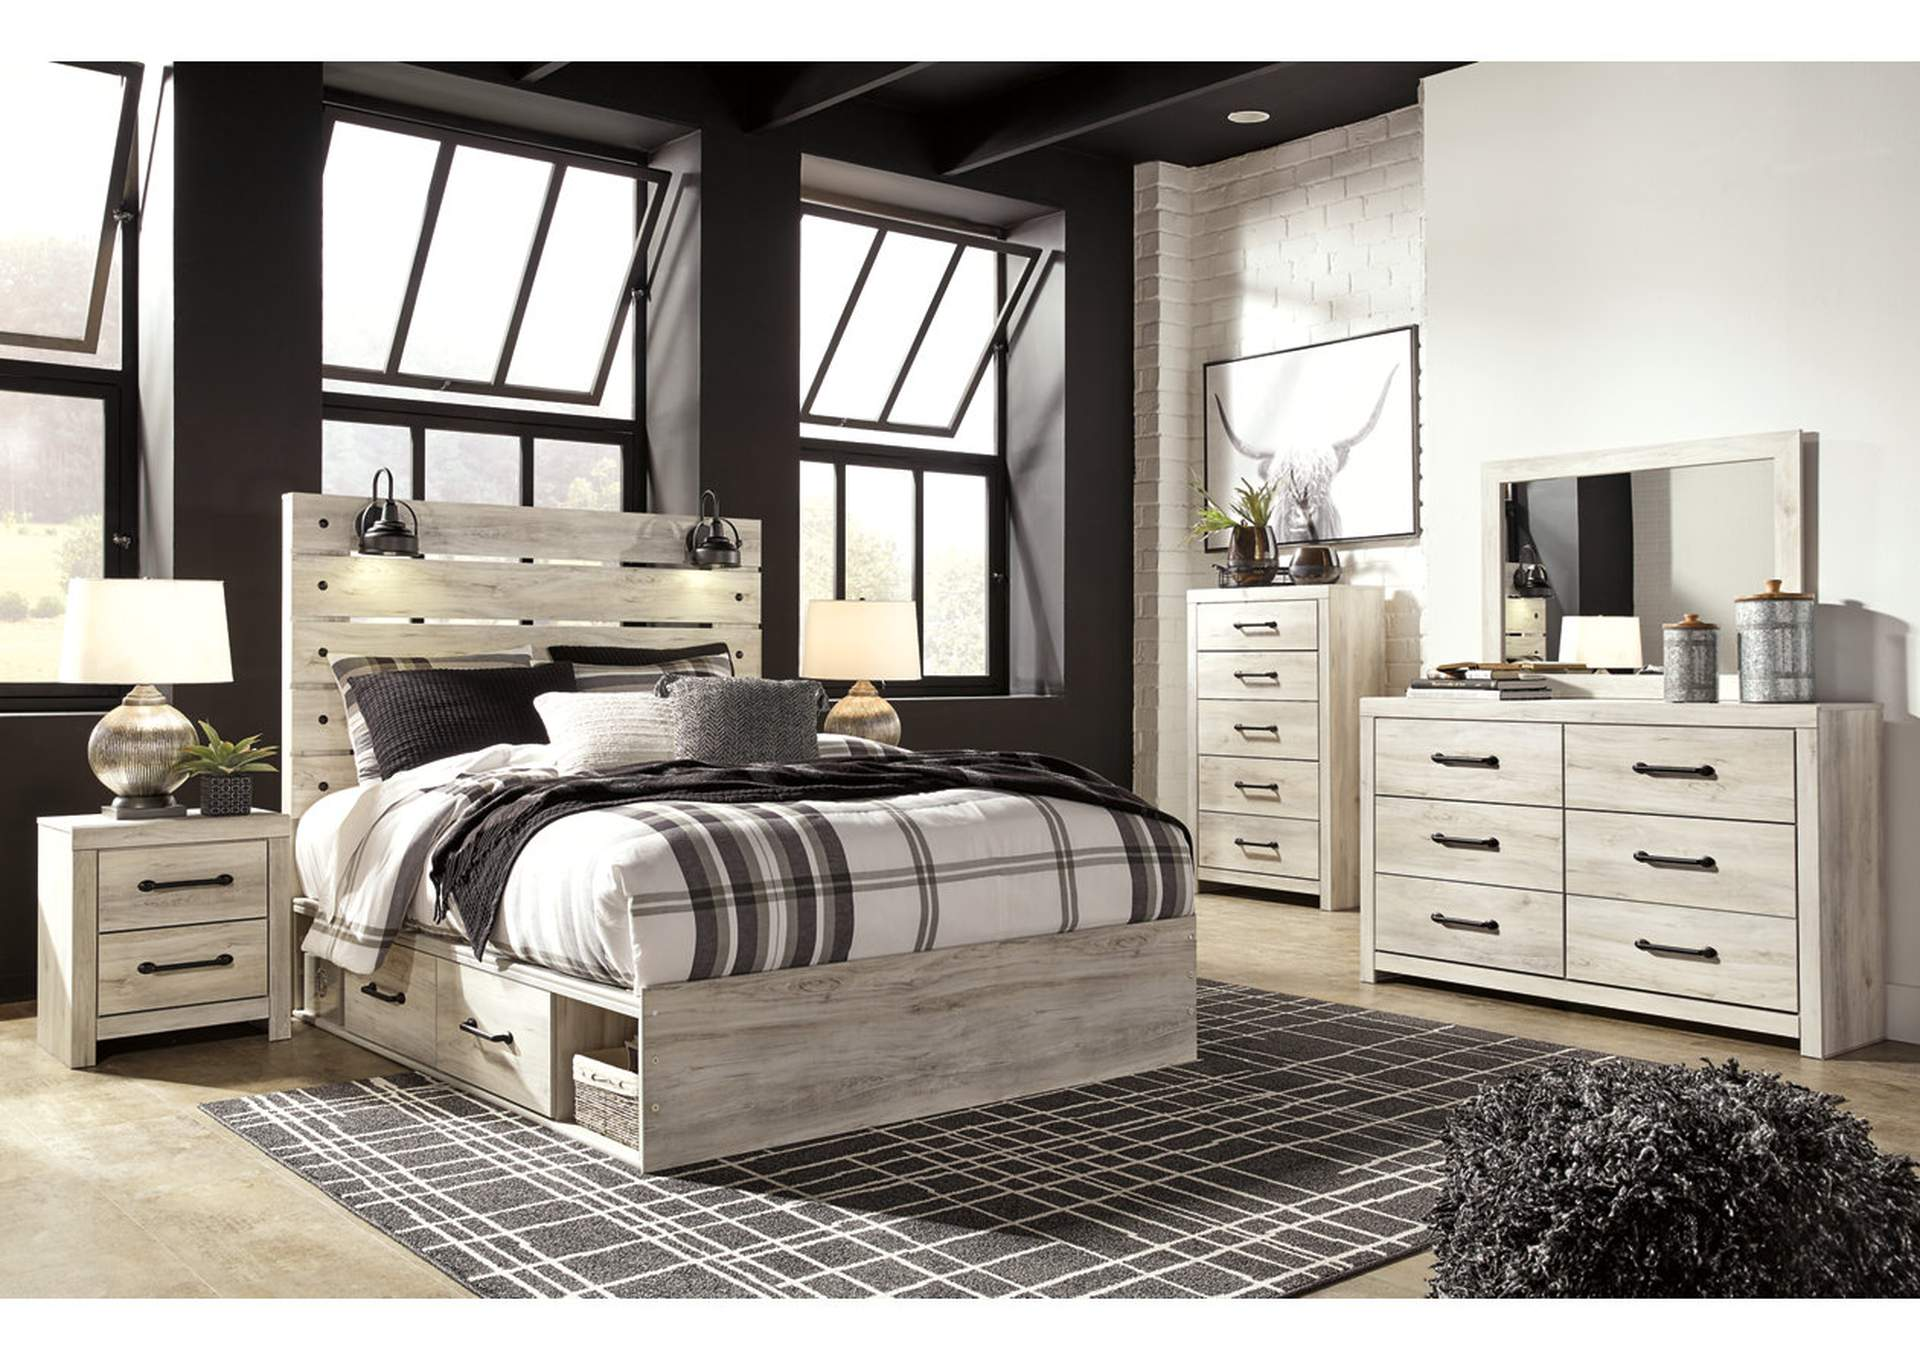 Cambeck Queen Panel Bed with 2 Storage Drawers, Dresser and Mirror,Signature Design By Ashley